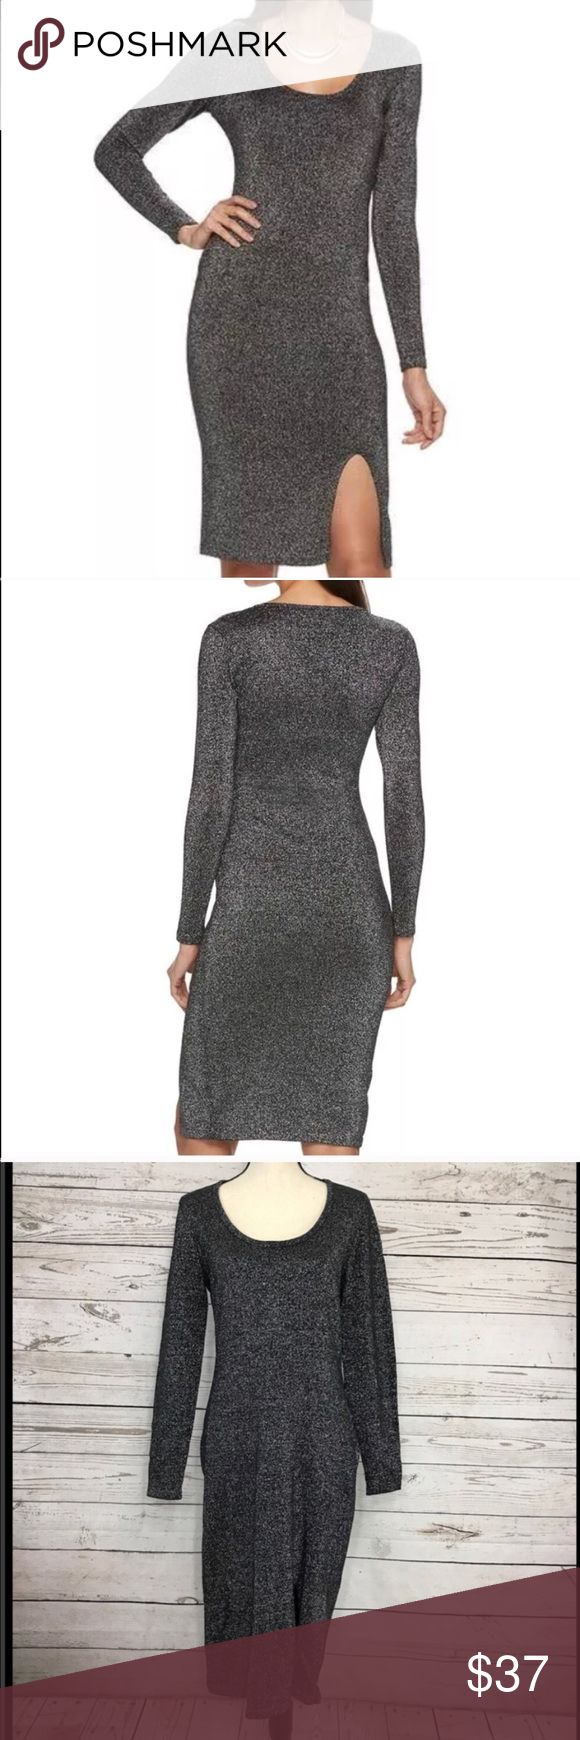 "JLO Jennifer Lopez Sheath Long Sleeve Dress New Gorgeous black, silver metallic long sleeve, sheath dress with a 9"" front slit. Perfect for holiday parties! New with tags. Bust: 37 1/2"". Length in the back from the shoulder: 43 1/2"". Measurements are approximate. Smoke free home. Thanks for shopping my closet 🌺! Jennifer Lopez Dresses Long Sleeve"